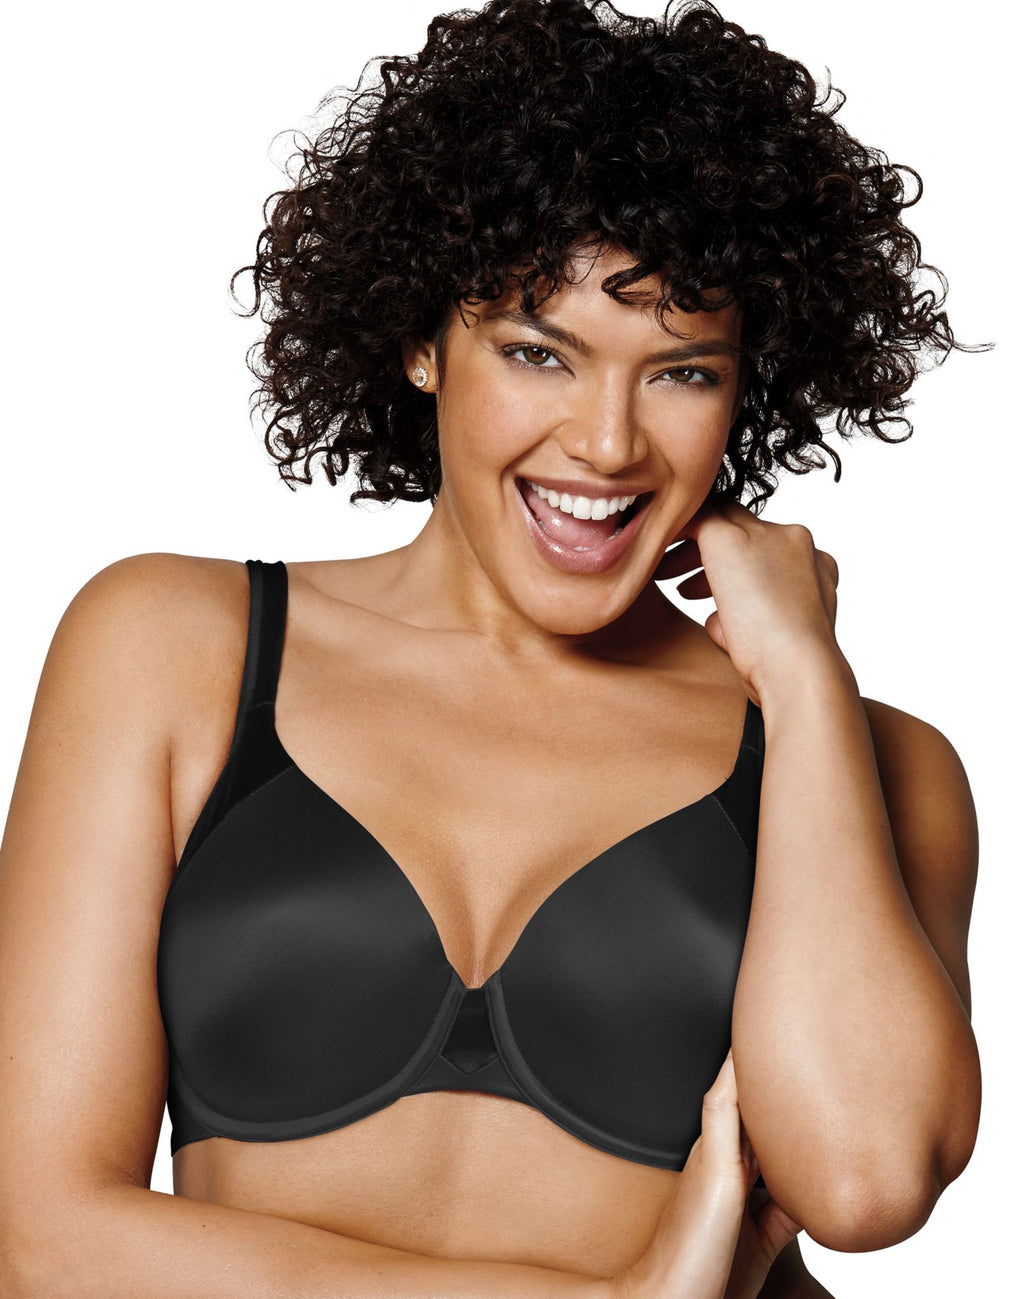 Playtex Womens Love My Curves T-Shirt Underwire Bra